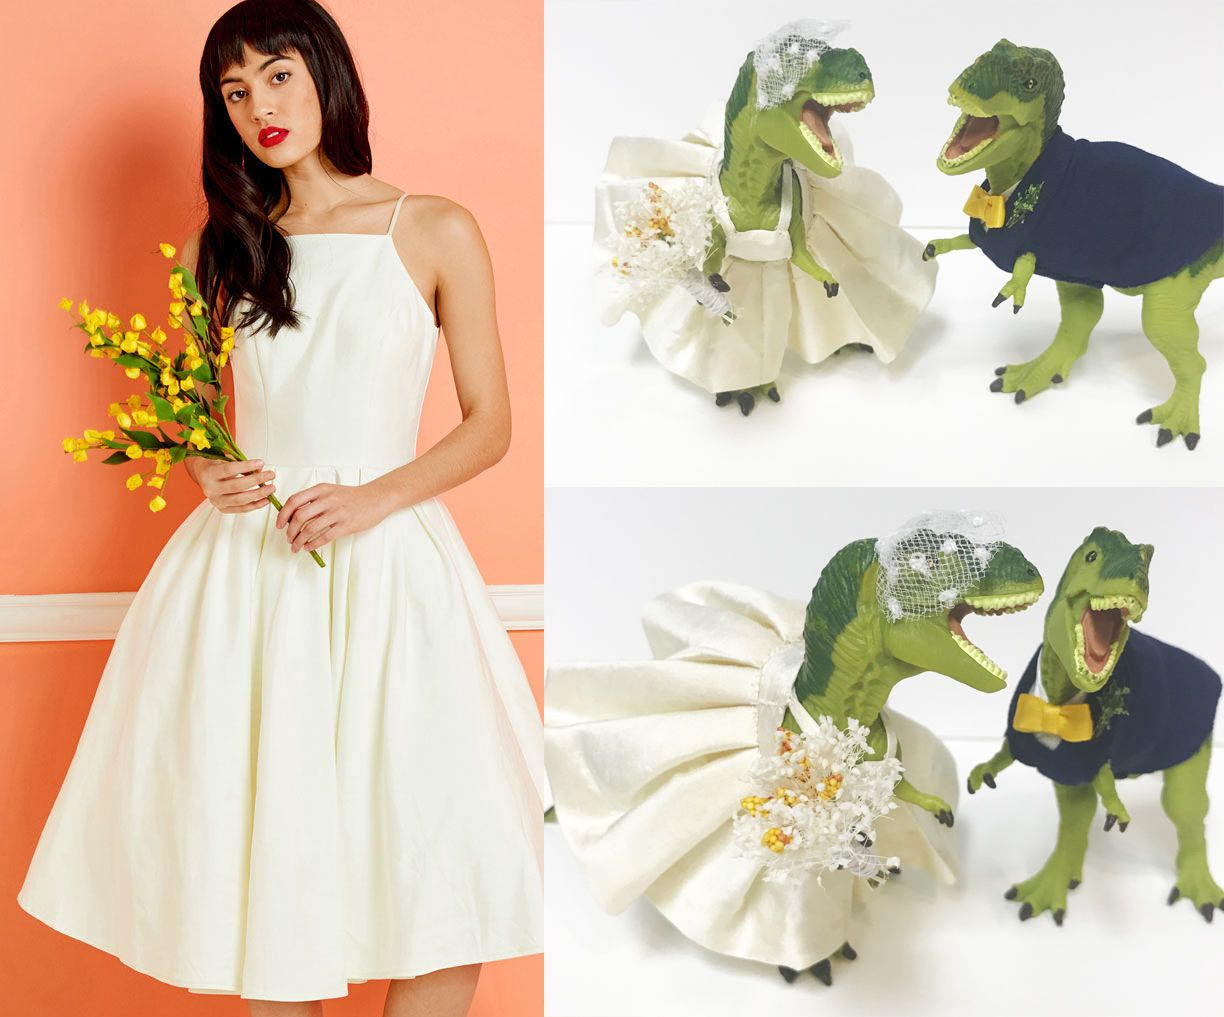 Customizable Dinosaur Send Me An Image Of Your Wedding Dress And I Will Make The Dinosaurs D Dinosaur Wedding Etsy Wedding Dress Dinosaur Wedding Cake Toppers